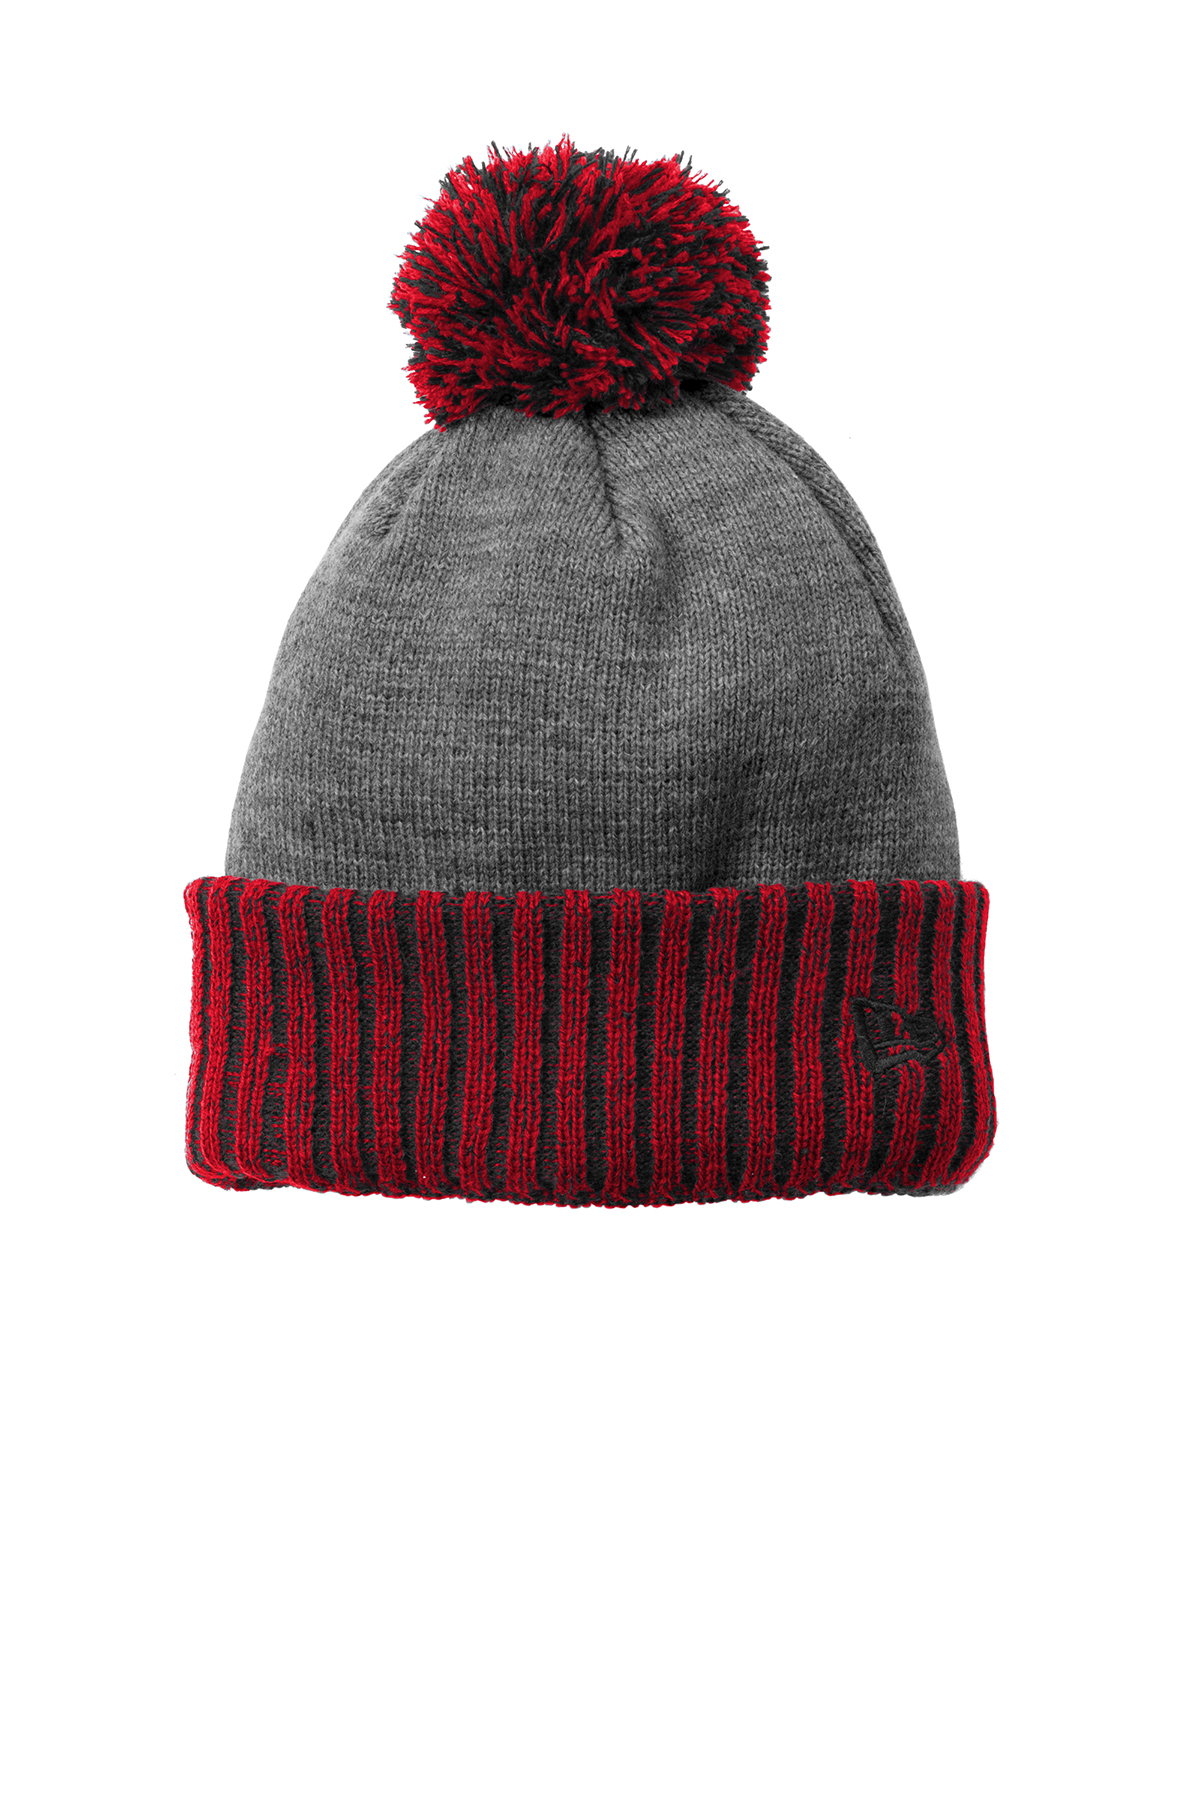 New Era NE904 - Colorblock Cuffed Beanie